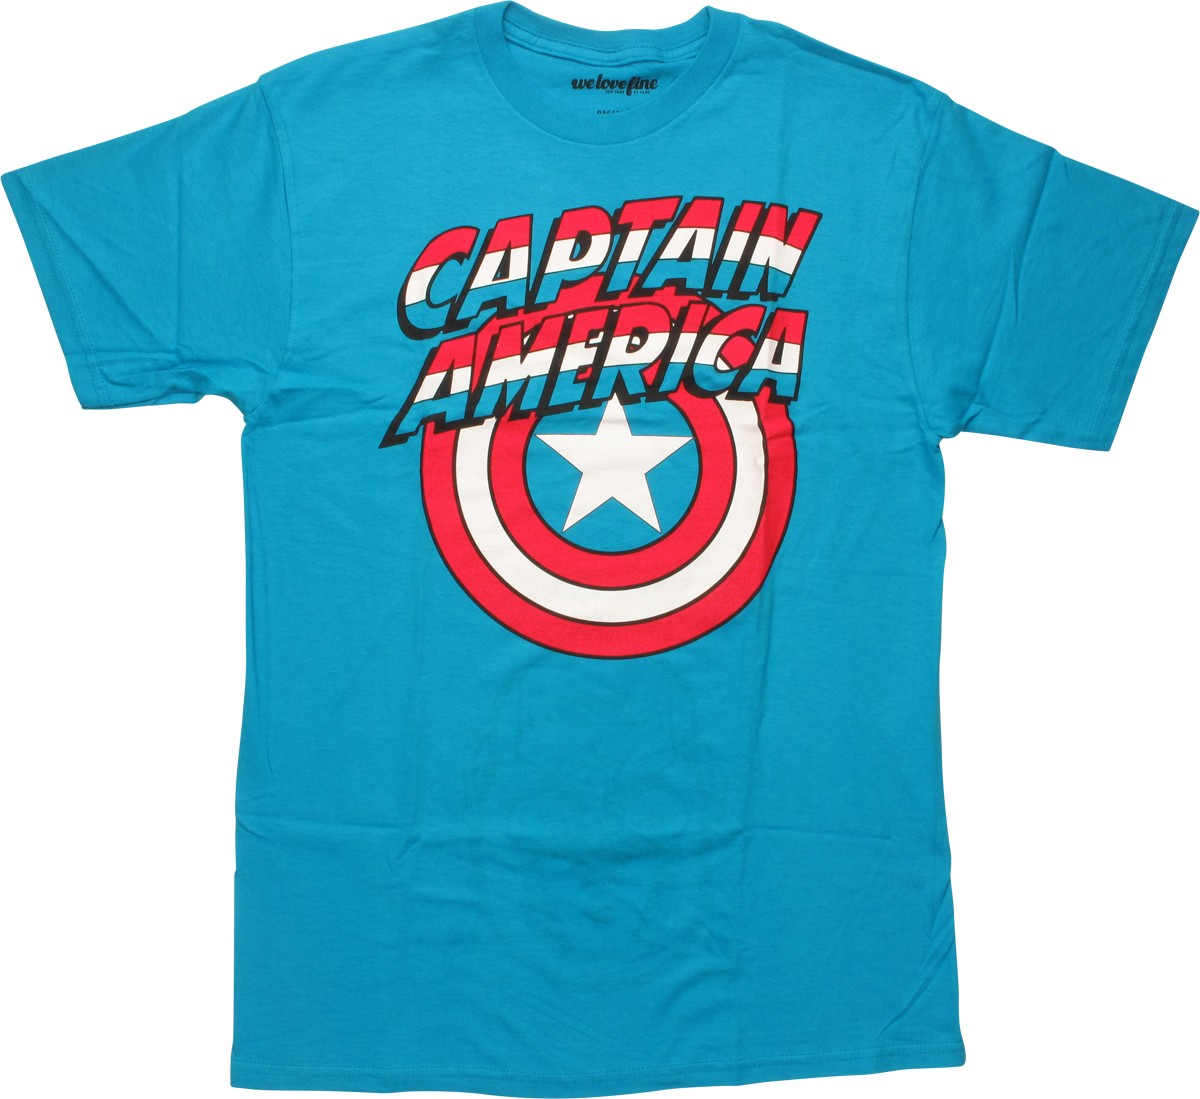 Captain America Name Logo Inside Print T Shirt